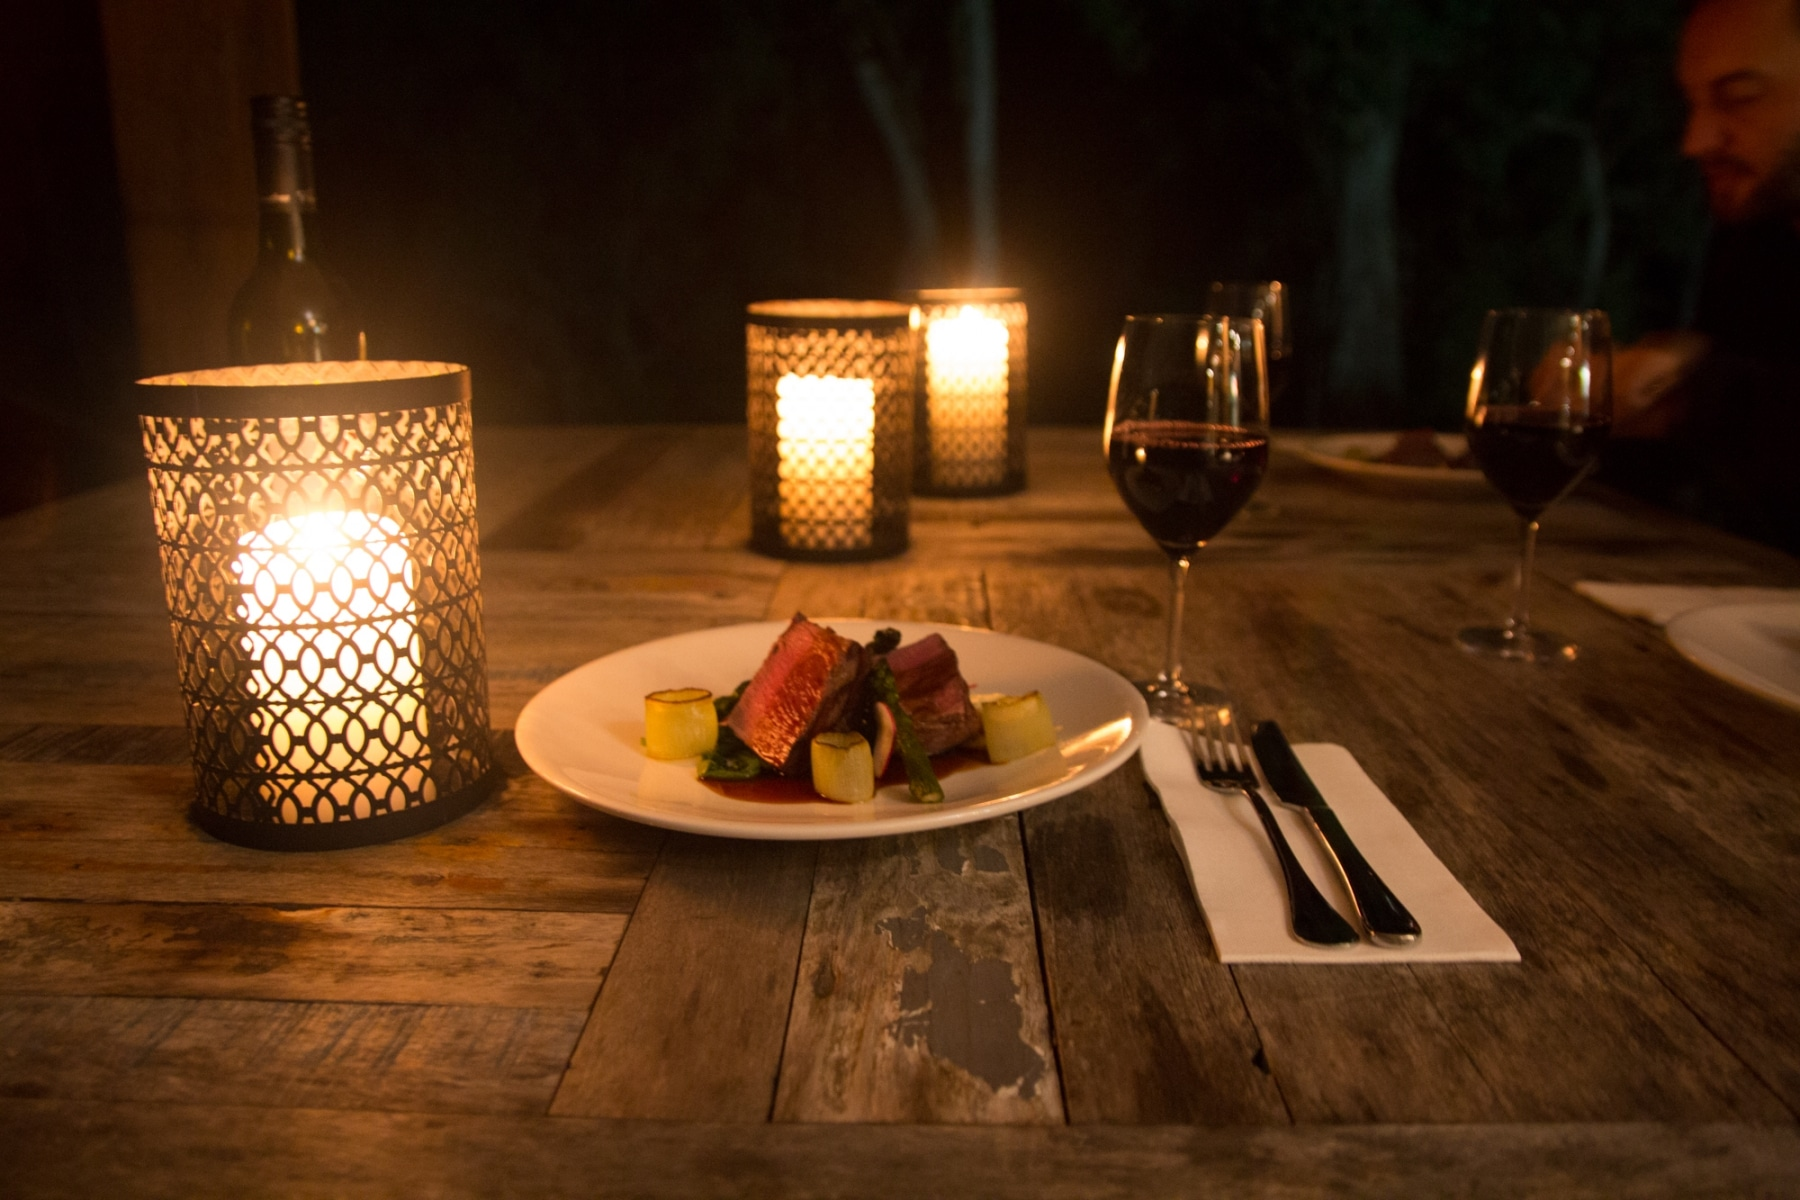 glamping luxury meets food on the table